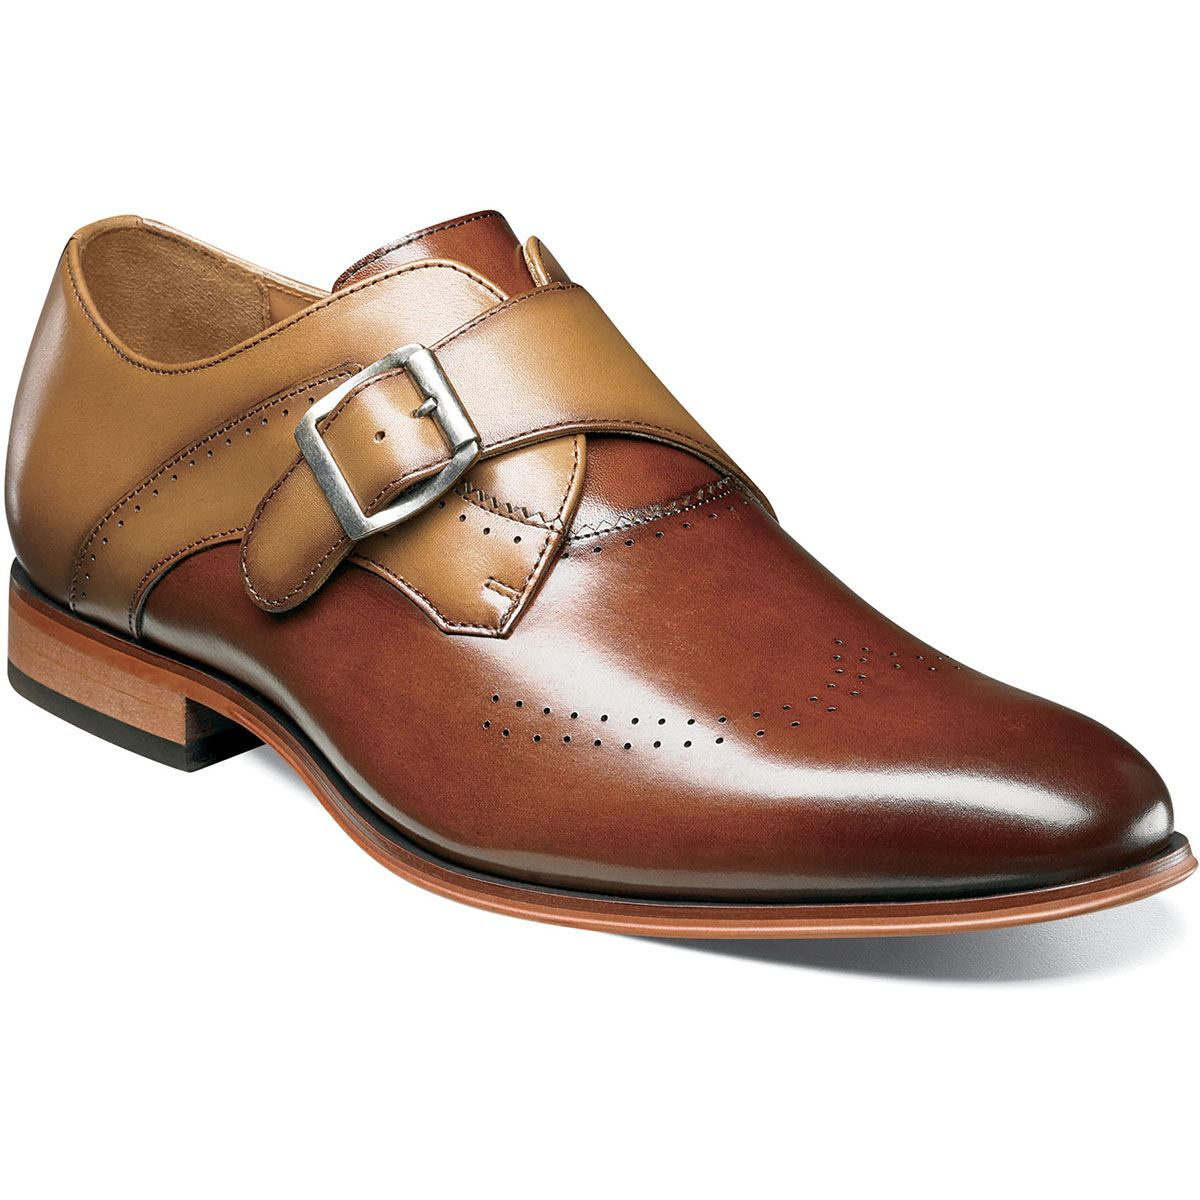 Stacy Stacy Stacy Adams Uomo Saxton Perf Wingtip Monk Strap (25178) 977c89